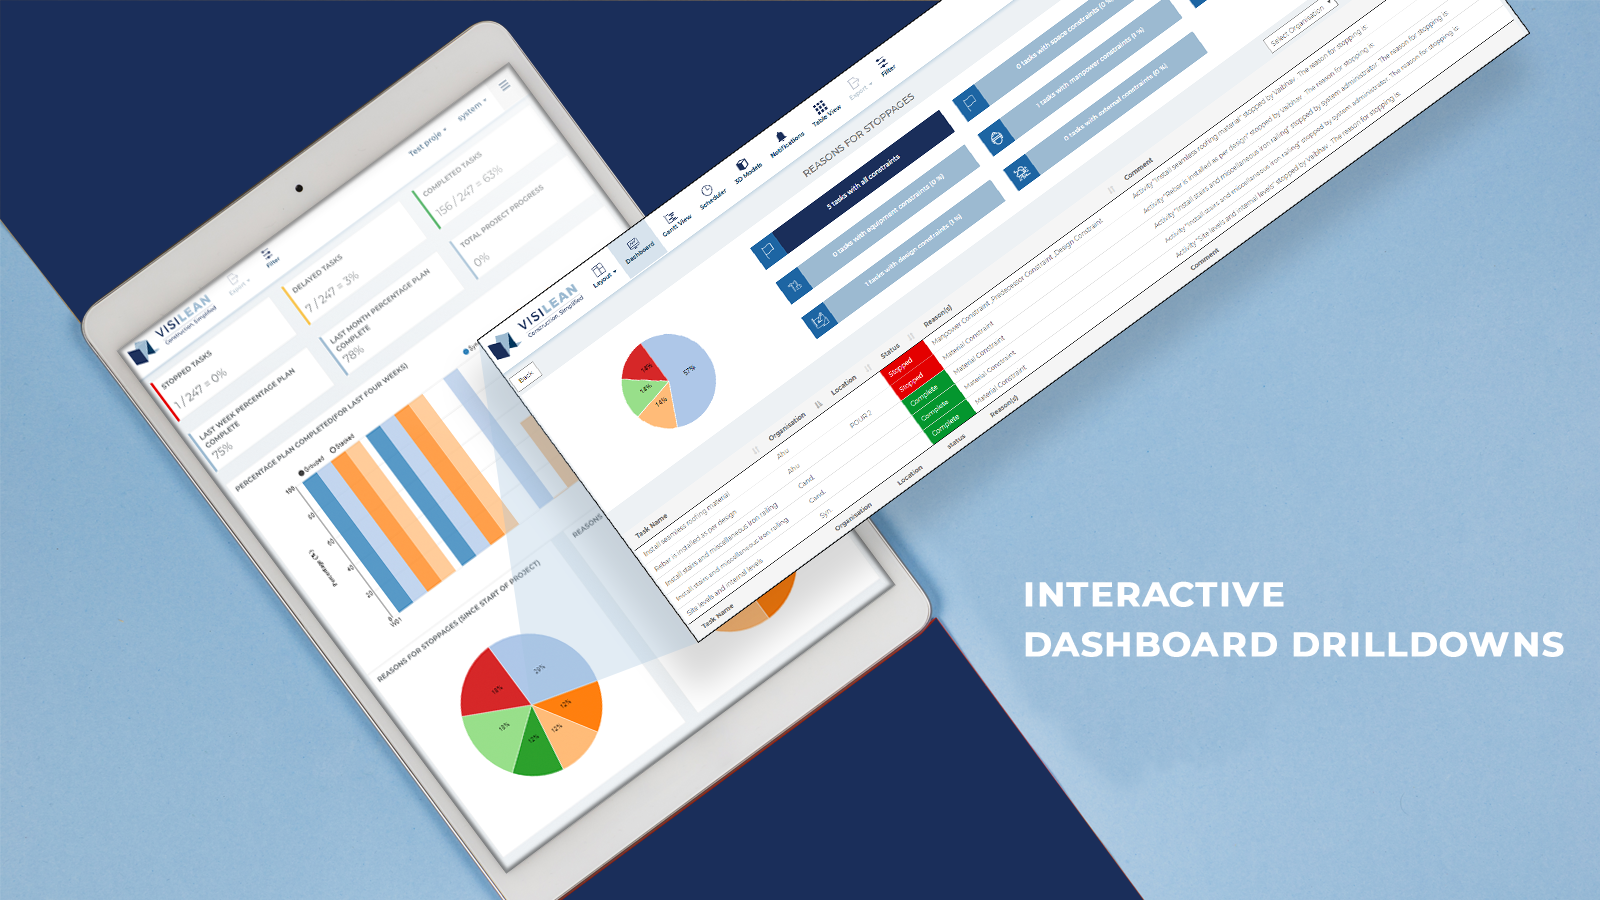 INTERACTIVE DASHBOARD DRILLDOWNS